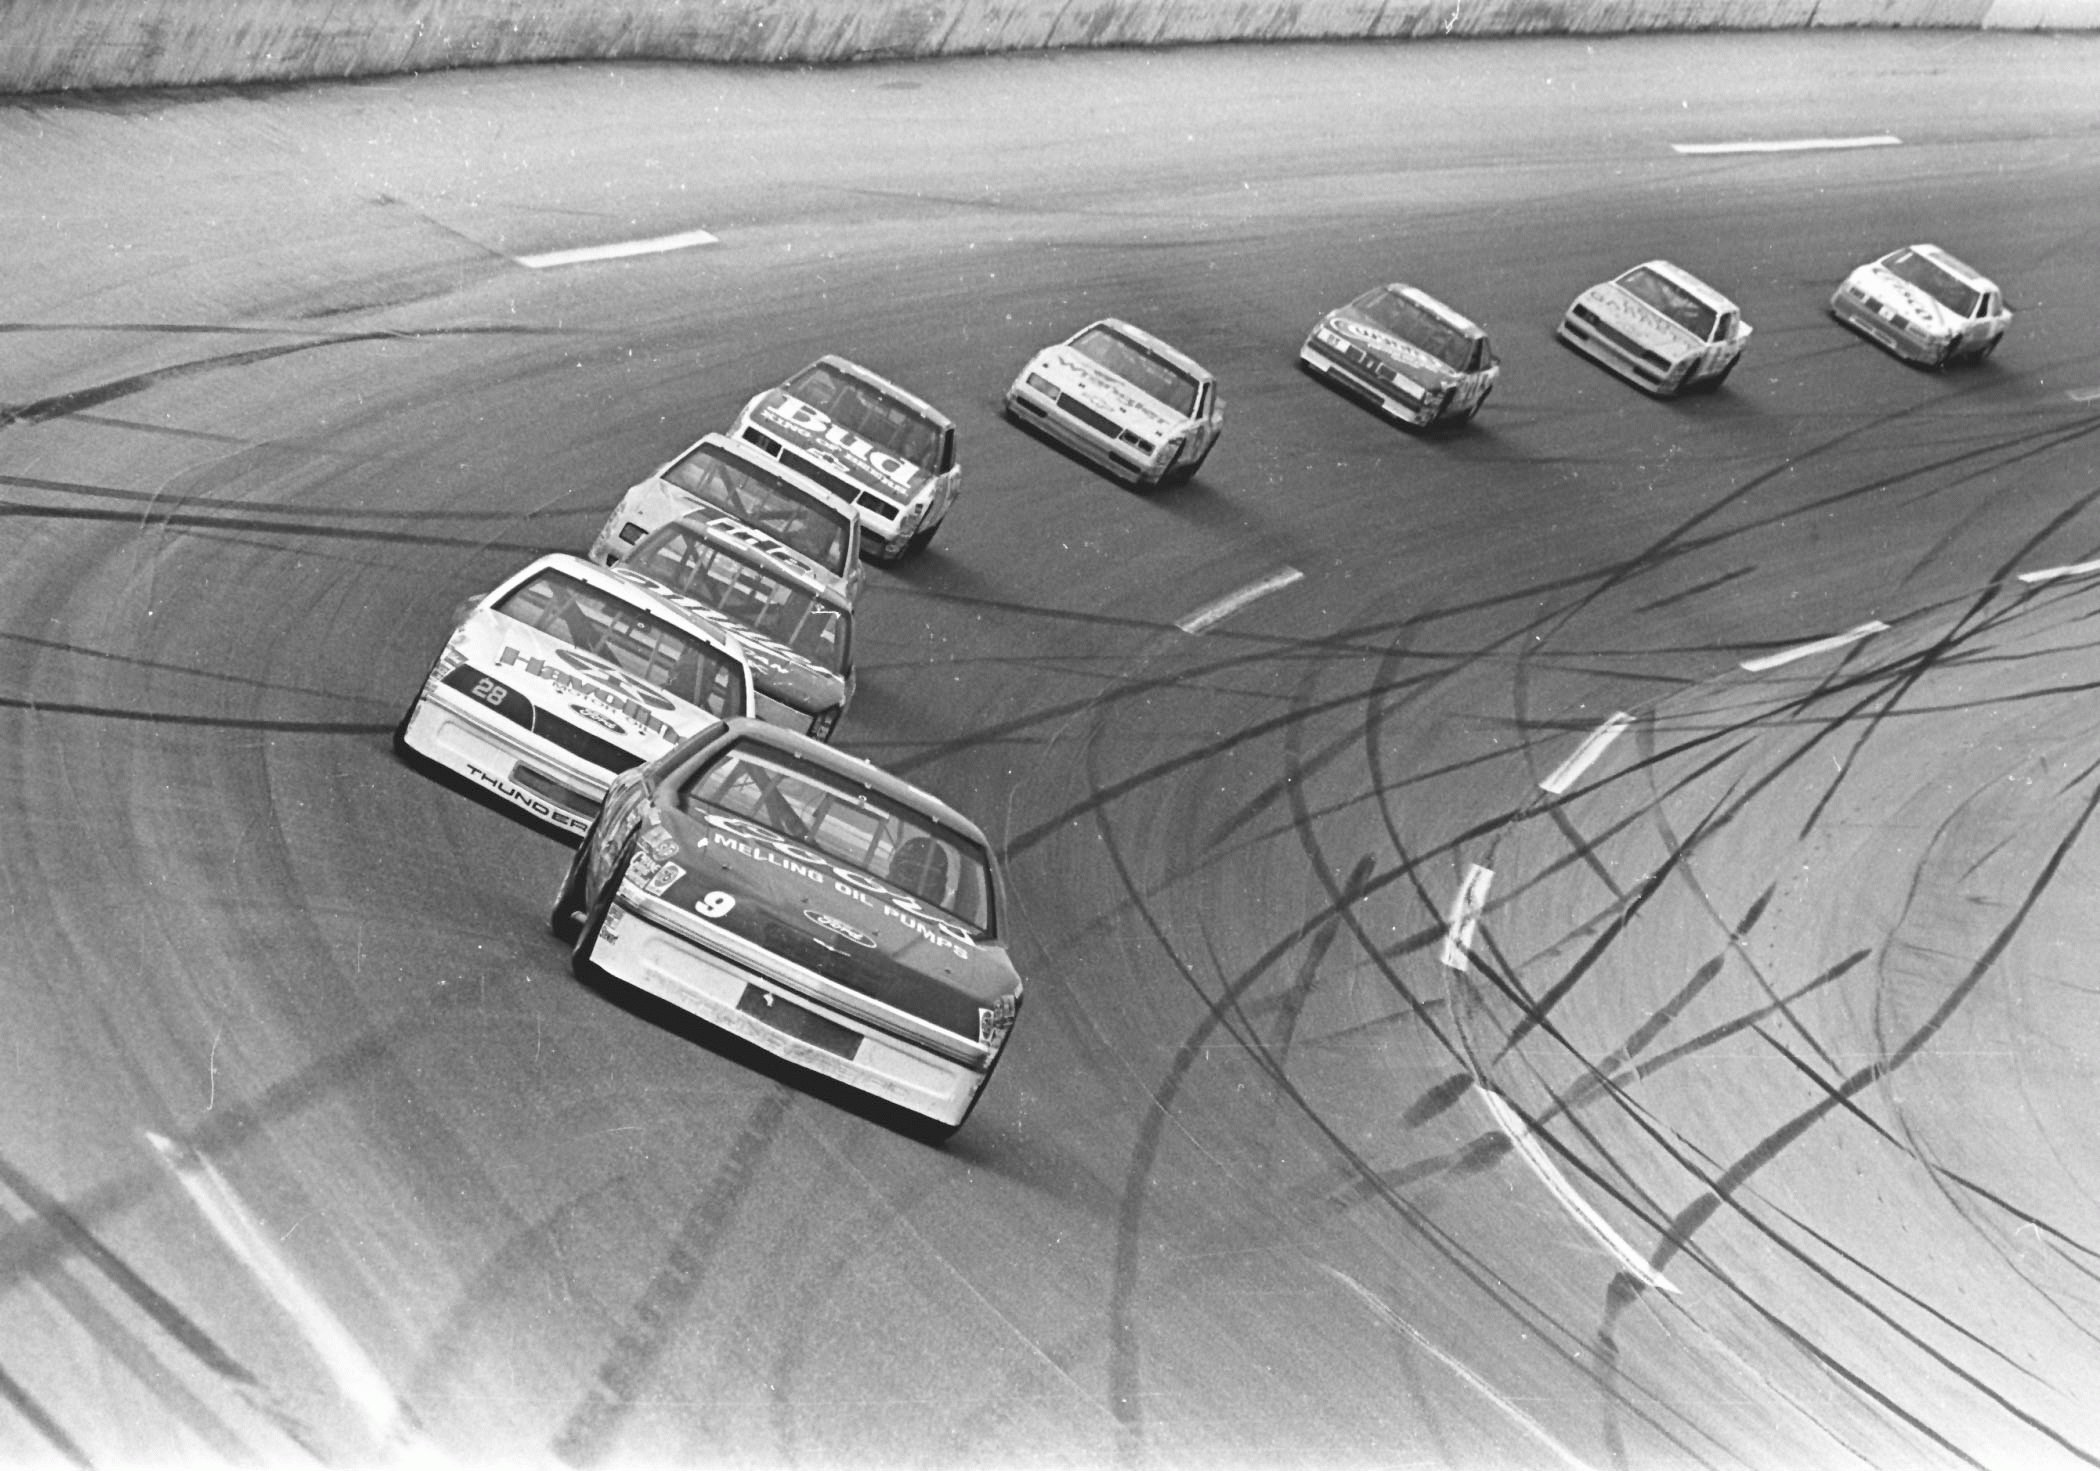 The 1987 Winston 500 Changed NASCAR Permanently